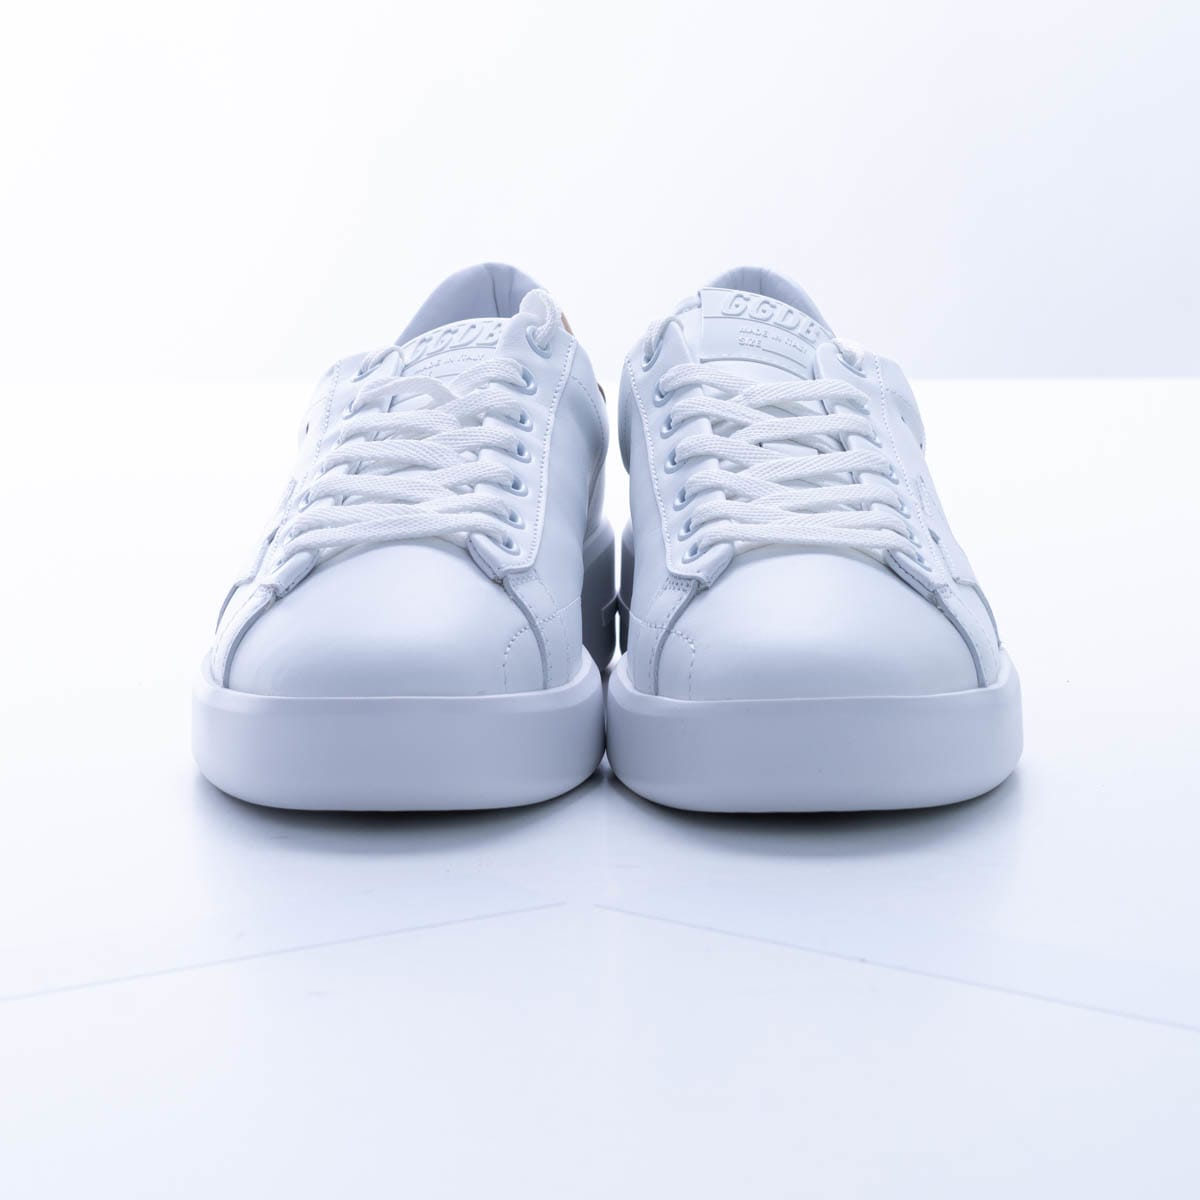 Golden Goose Pure Leather Sneaker In White - Beige